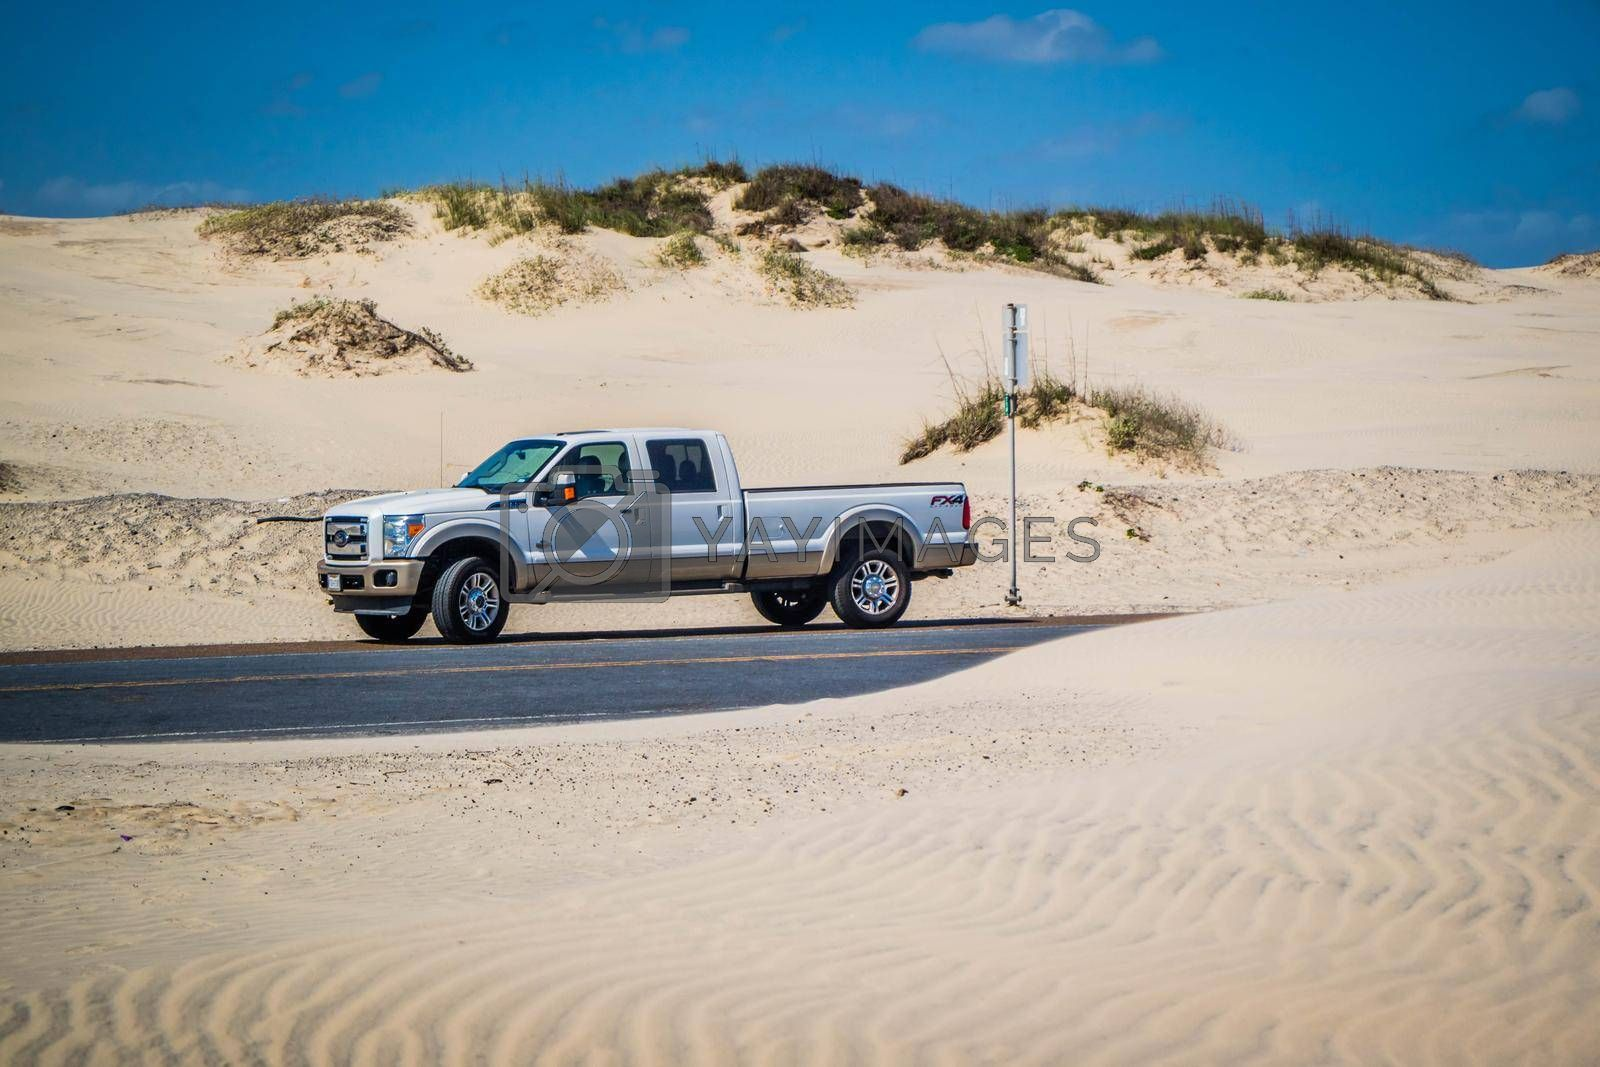 Royalty free image of South Padre Island, TX, USA - Feb 25, 2017: The F350 Ford parked along the preserved resort town by cherialguire